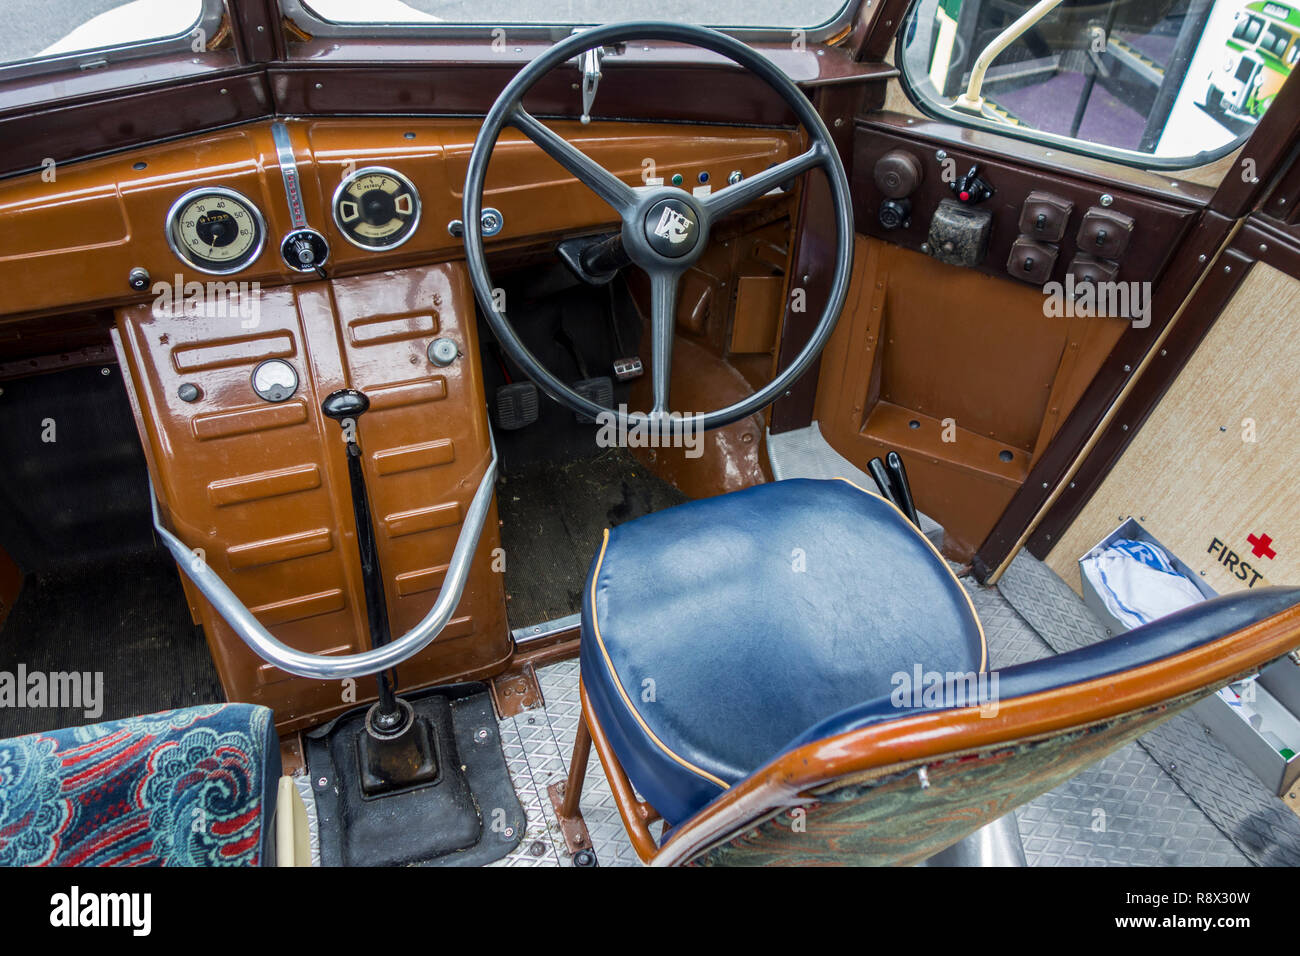 Dashboard and steering wheel of 1950 Bedford OB Duple Vista coach / bus - Stock Image